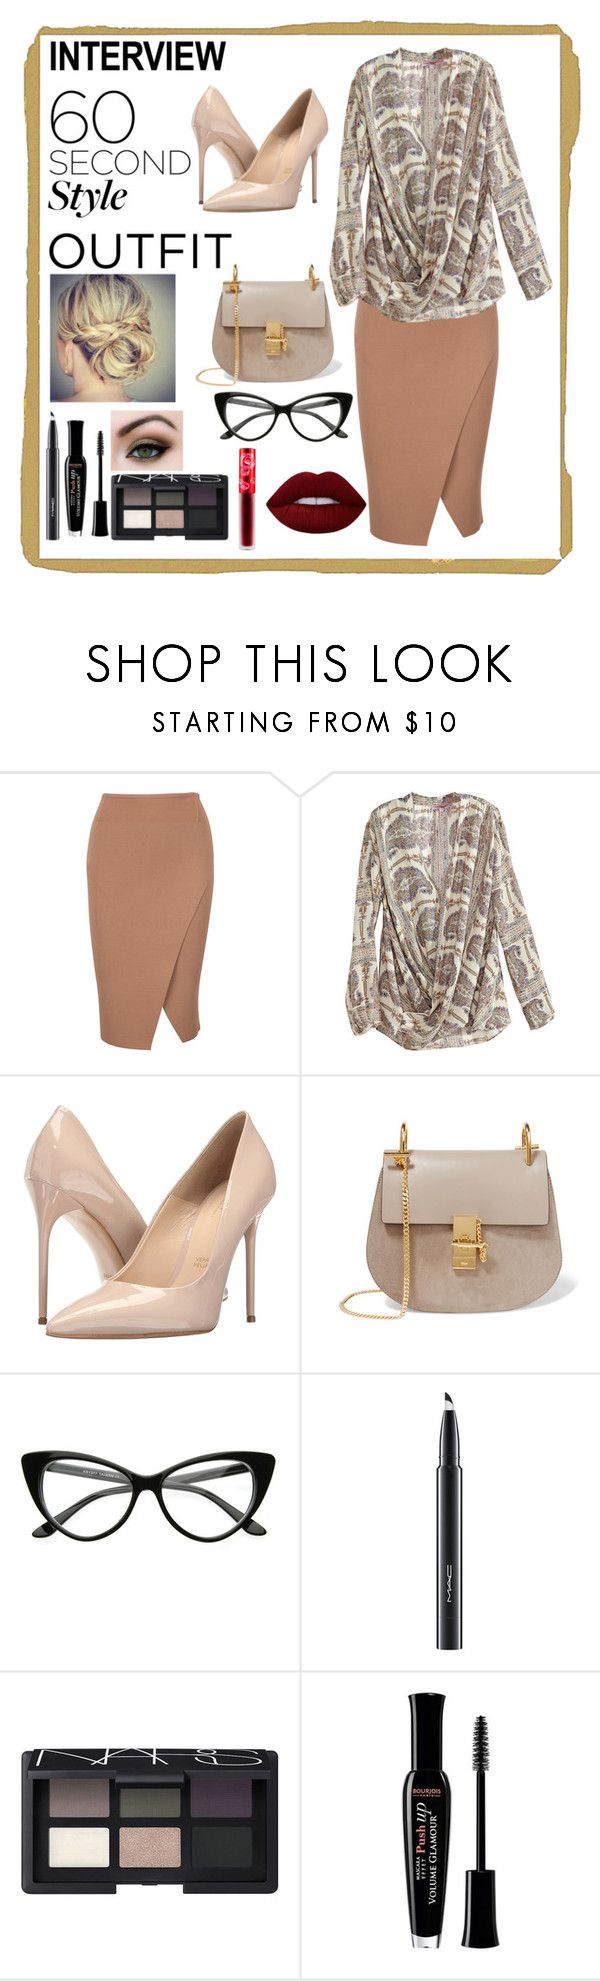 """Job Interview✔"" by haybeebaby ❤ liked on Polyvore featuring Calypso St. Barth, Massimo Matteo, Chloé, MAC Cosmetics, NARS Cosmetics, Bourjois, Lime Crime, jobinterview and 60secondstyle"